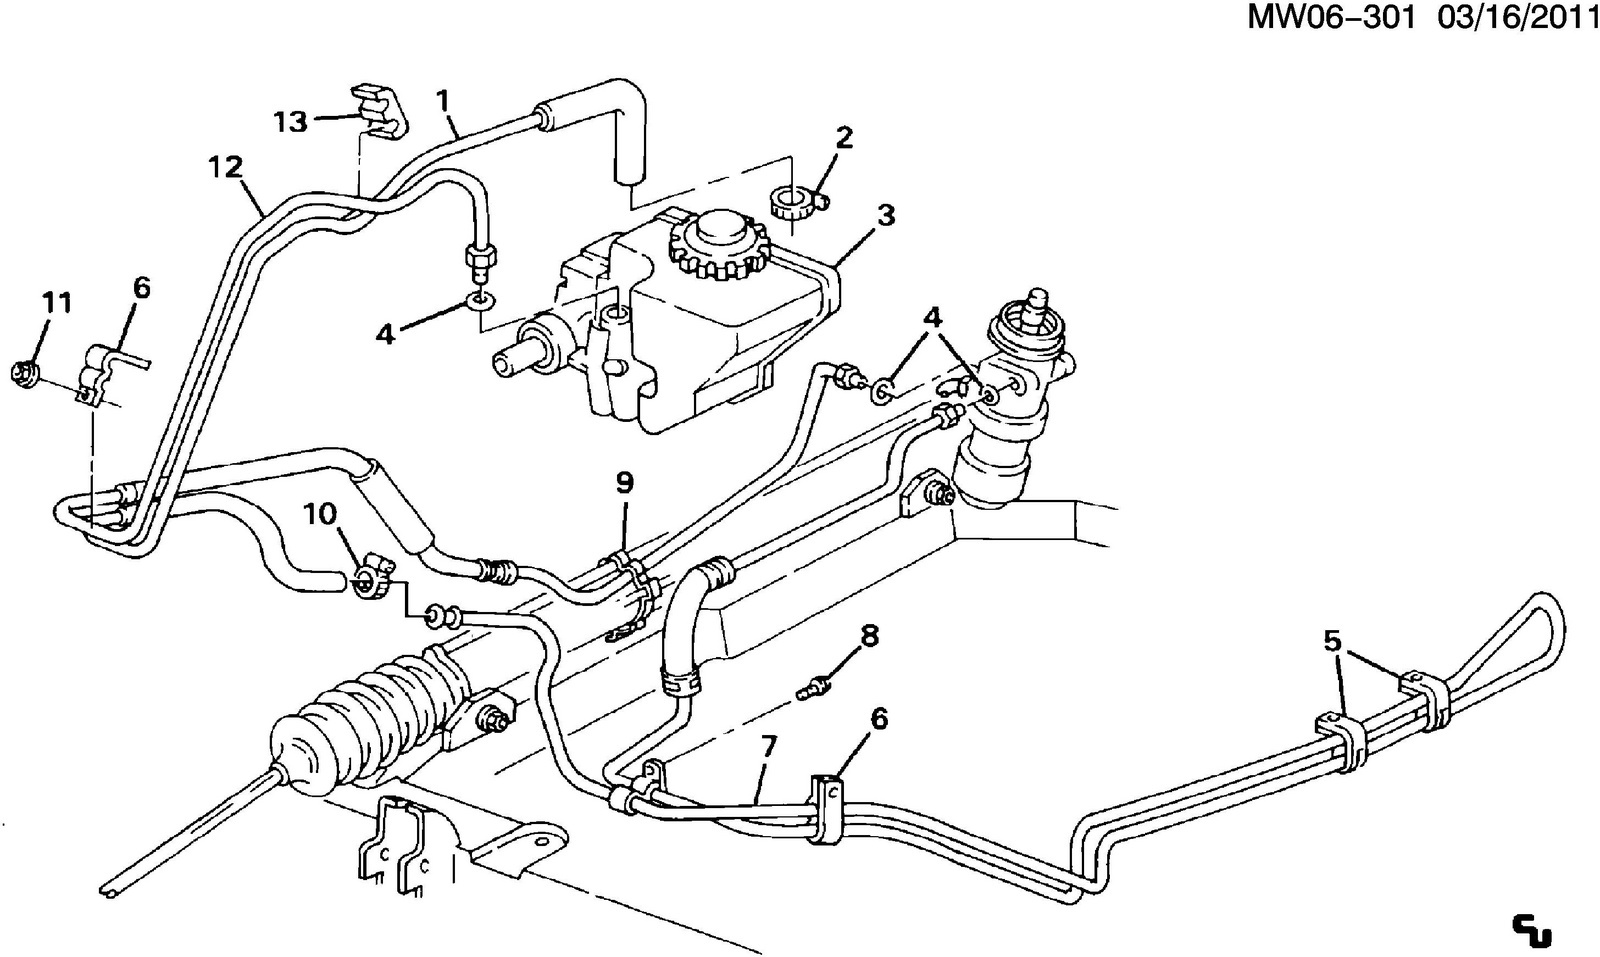 Discussion T16816_ds577757 on 1992 Ford Ranger Engine Diagram